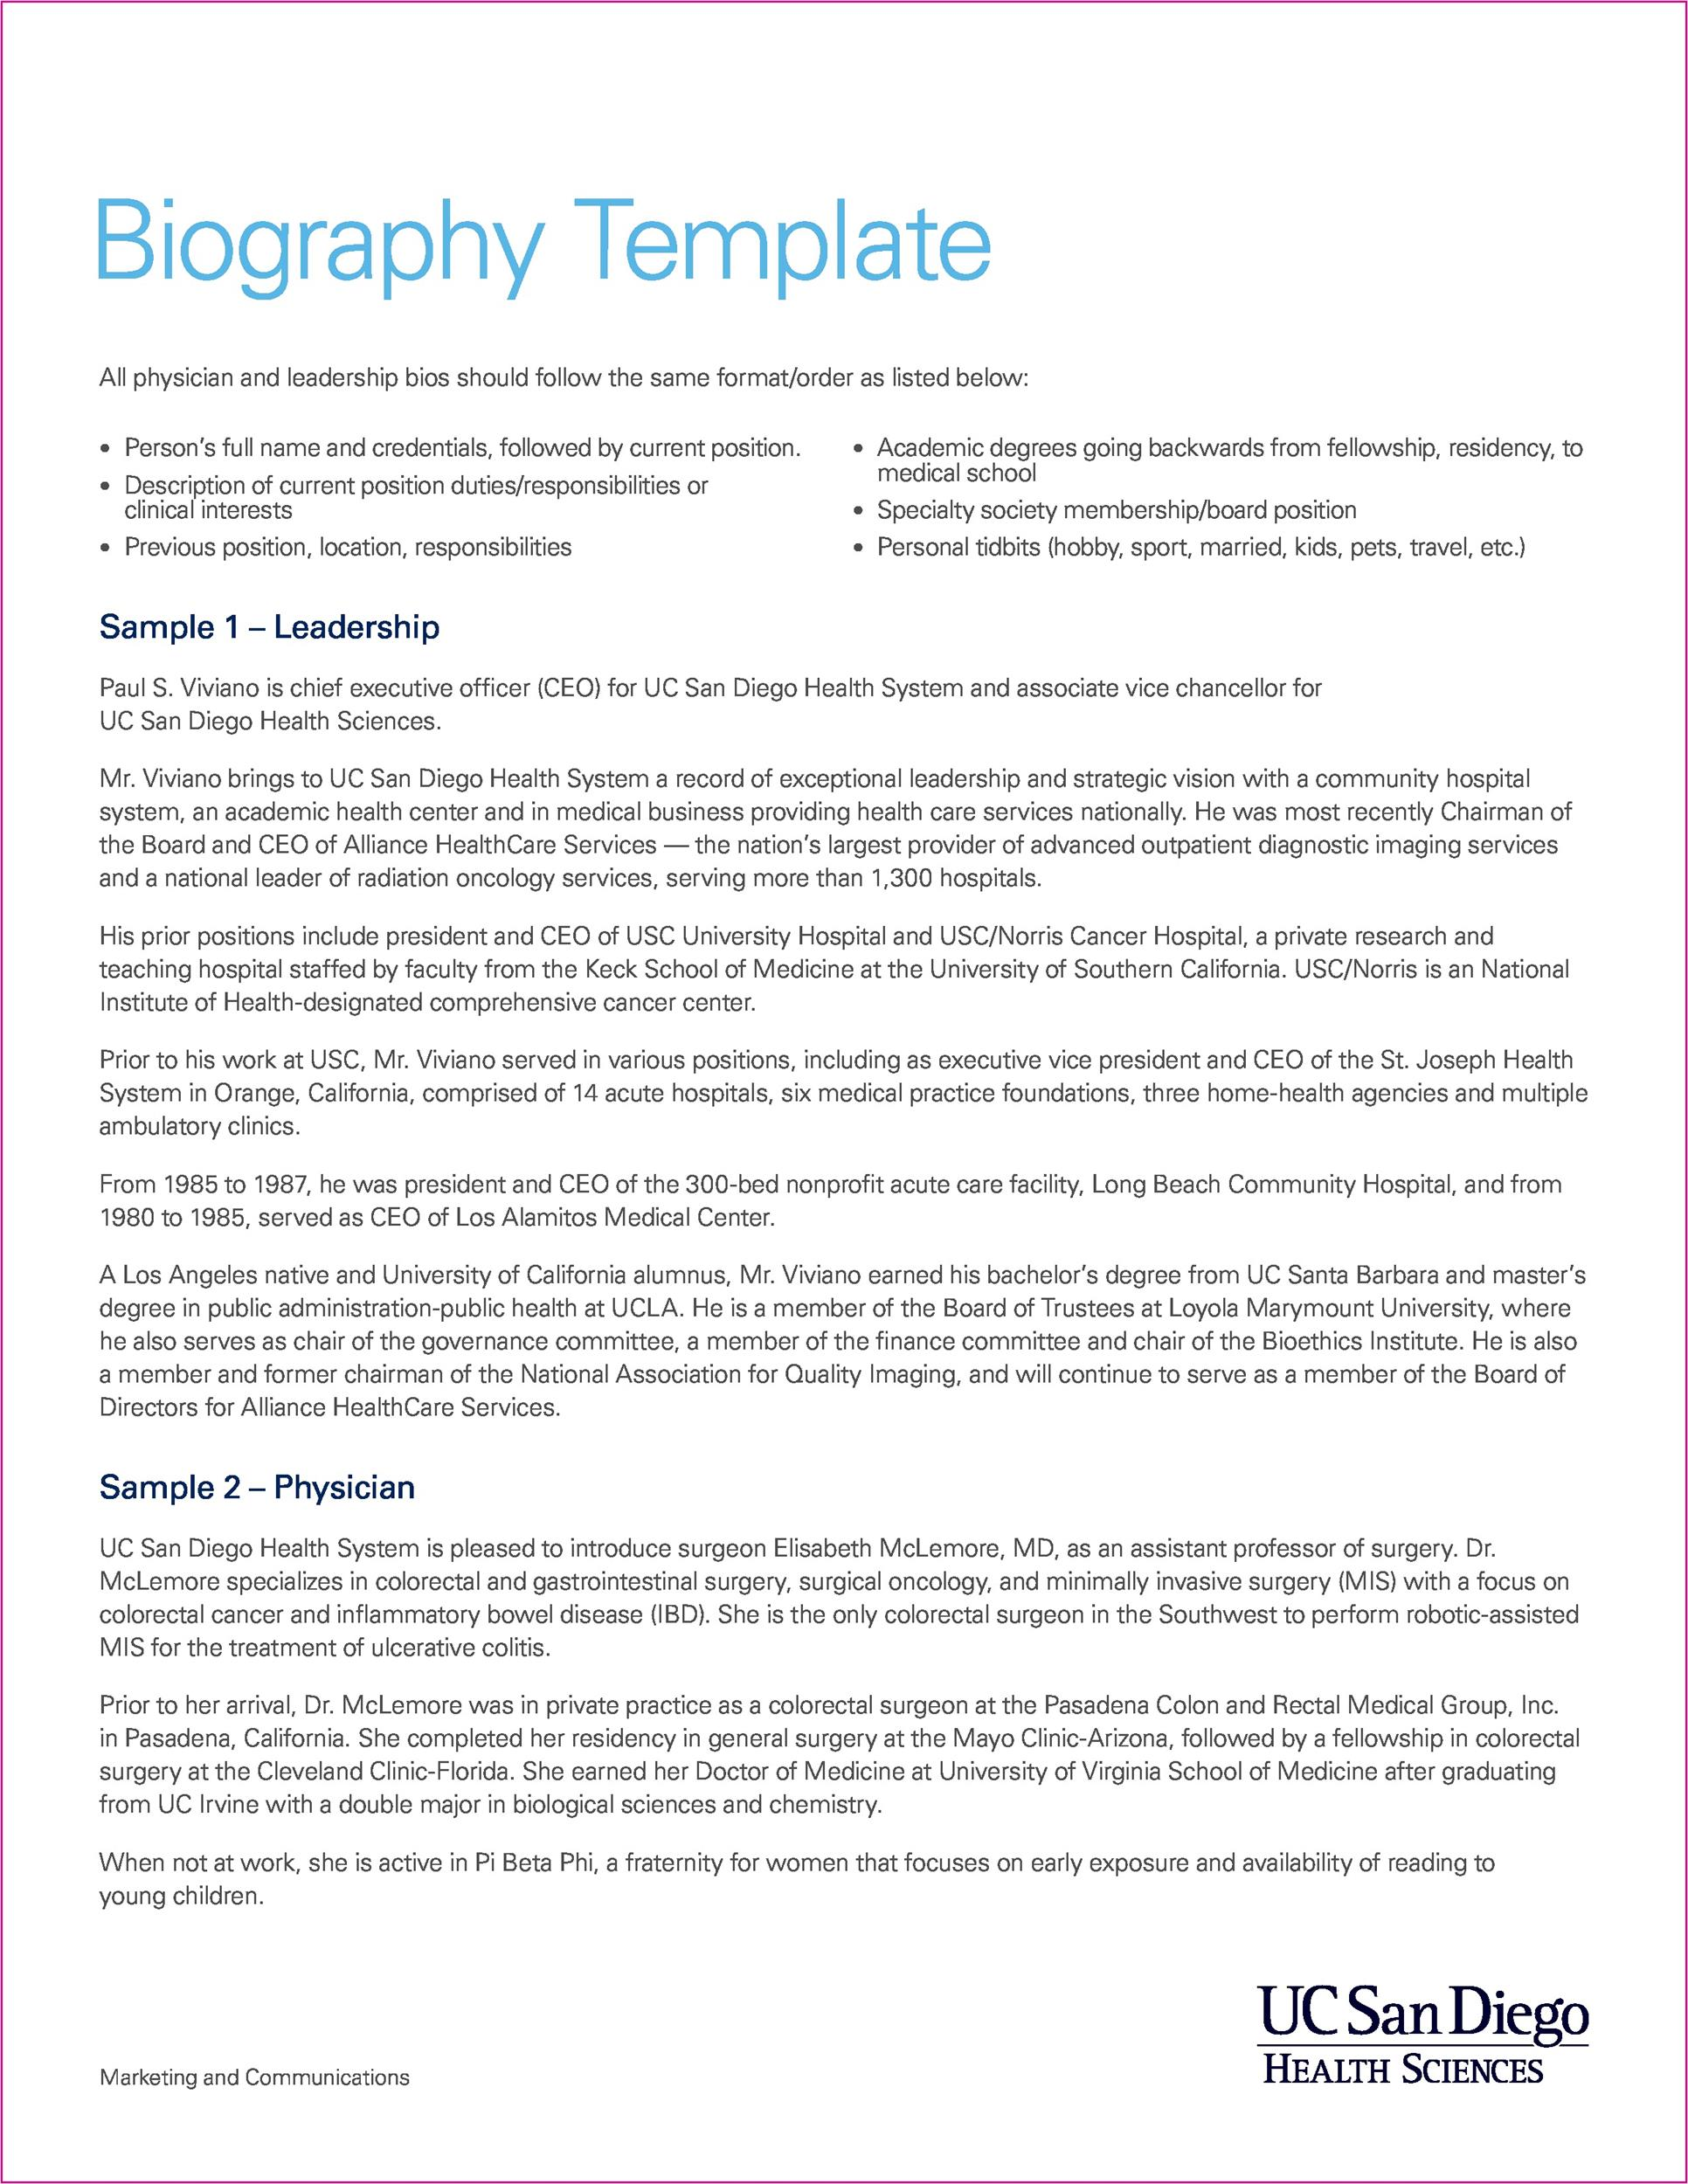 45 Biography Templates Examples Personal Professional – Biography Template